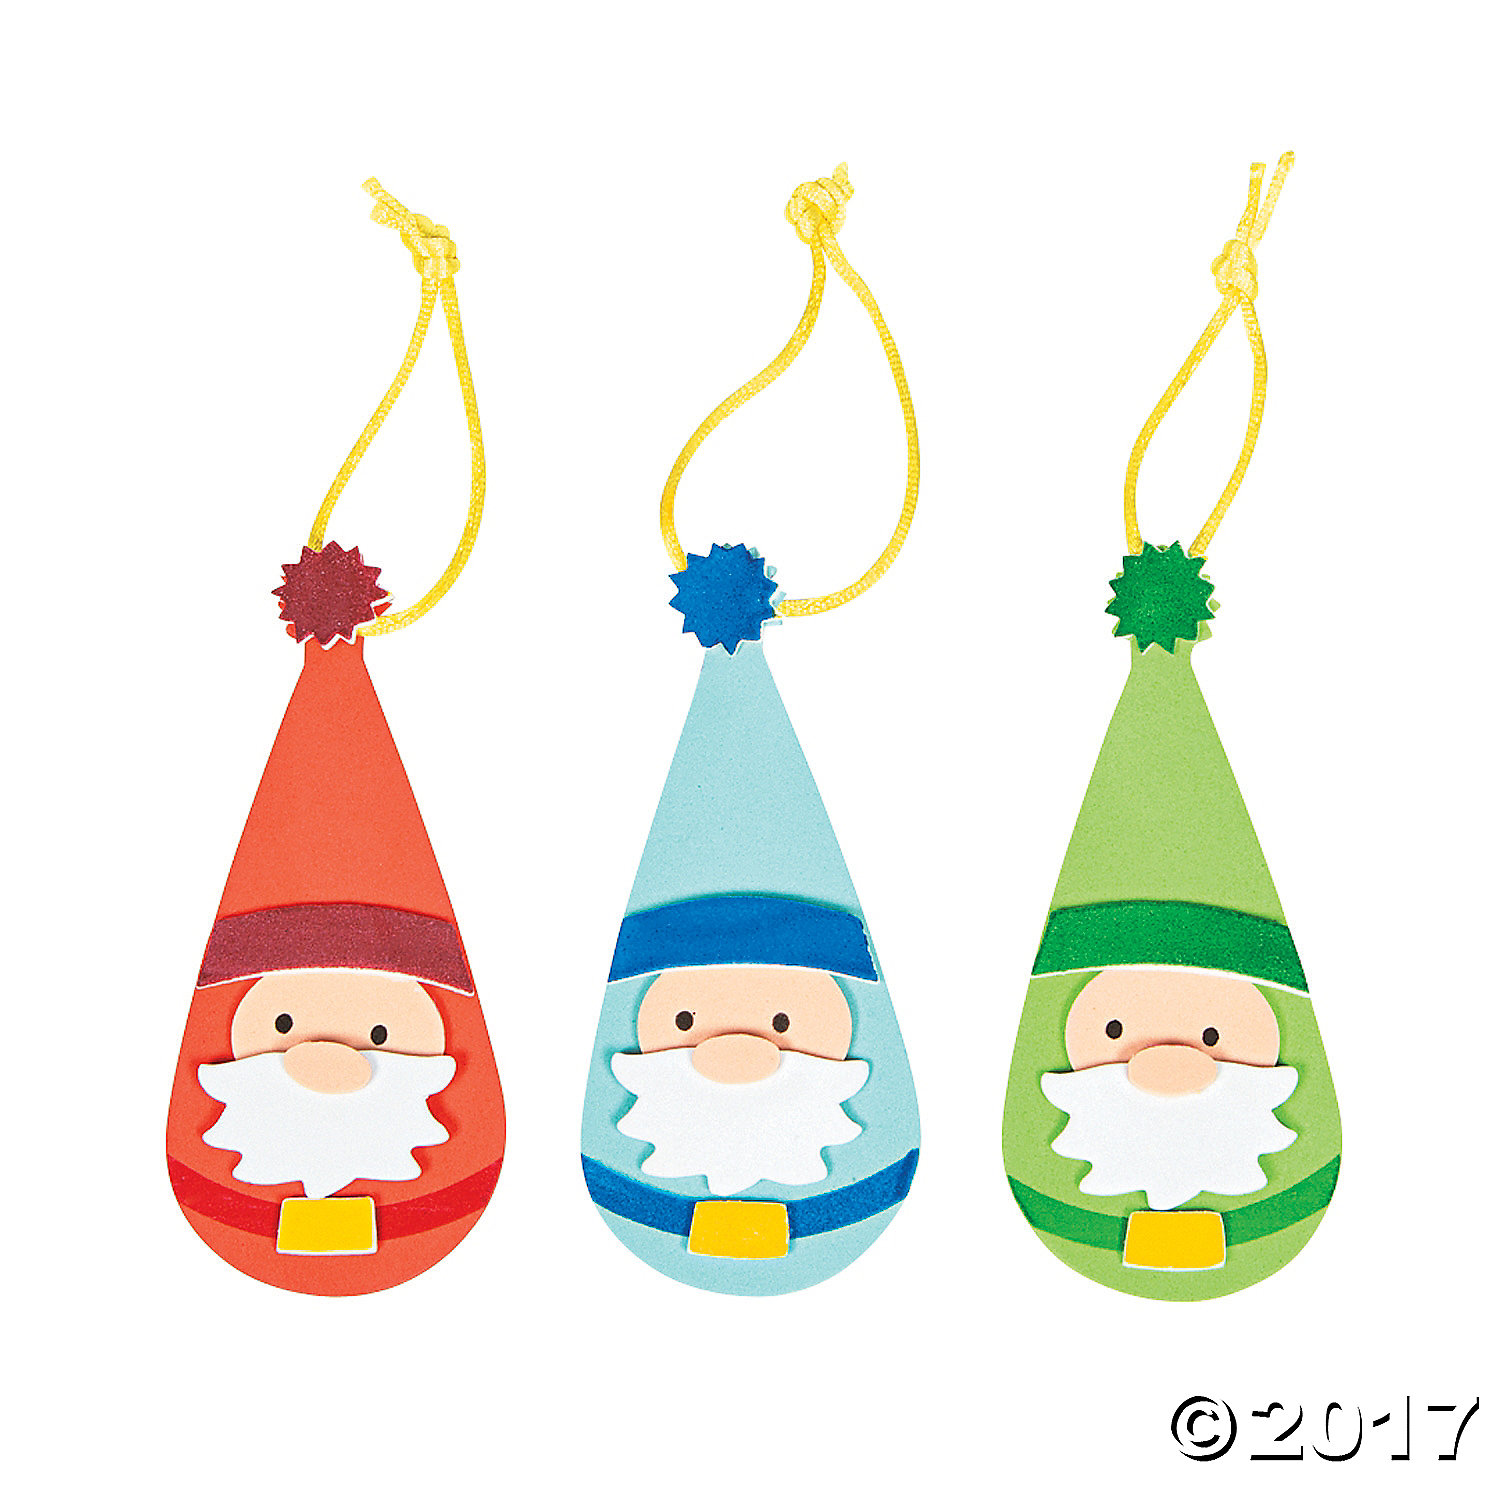 Santa gnome ornament craft kit 12pk party supplies canada for Craft kits for preschoolers